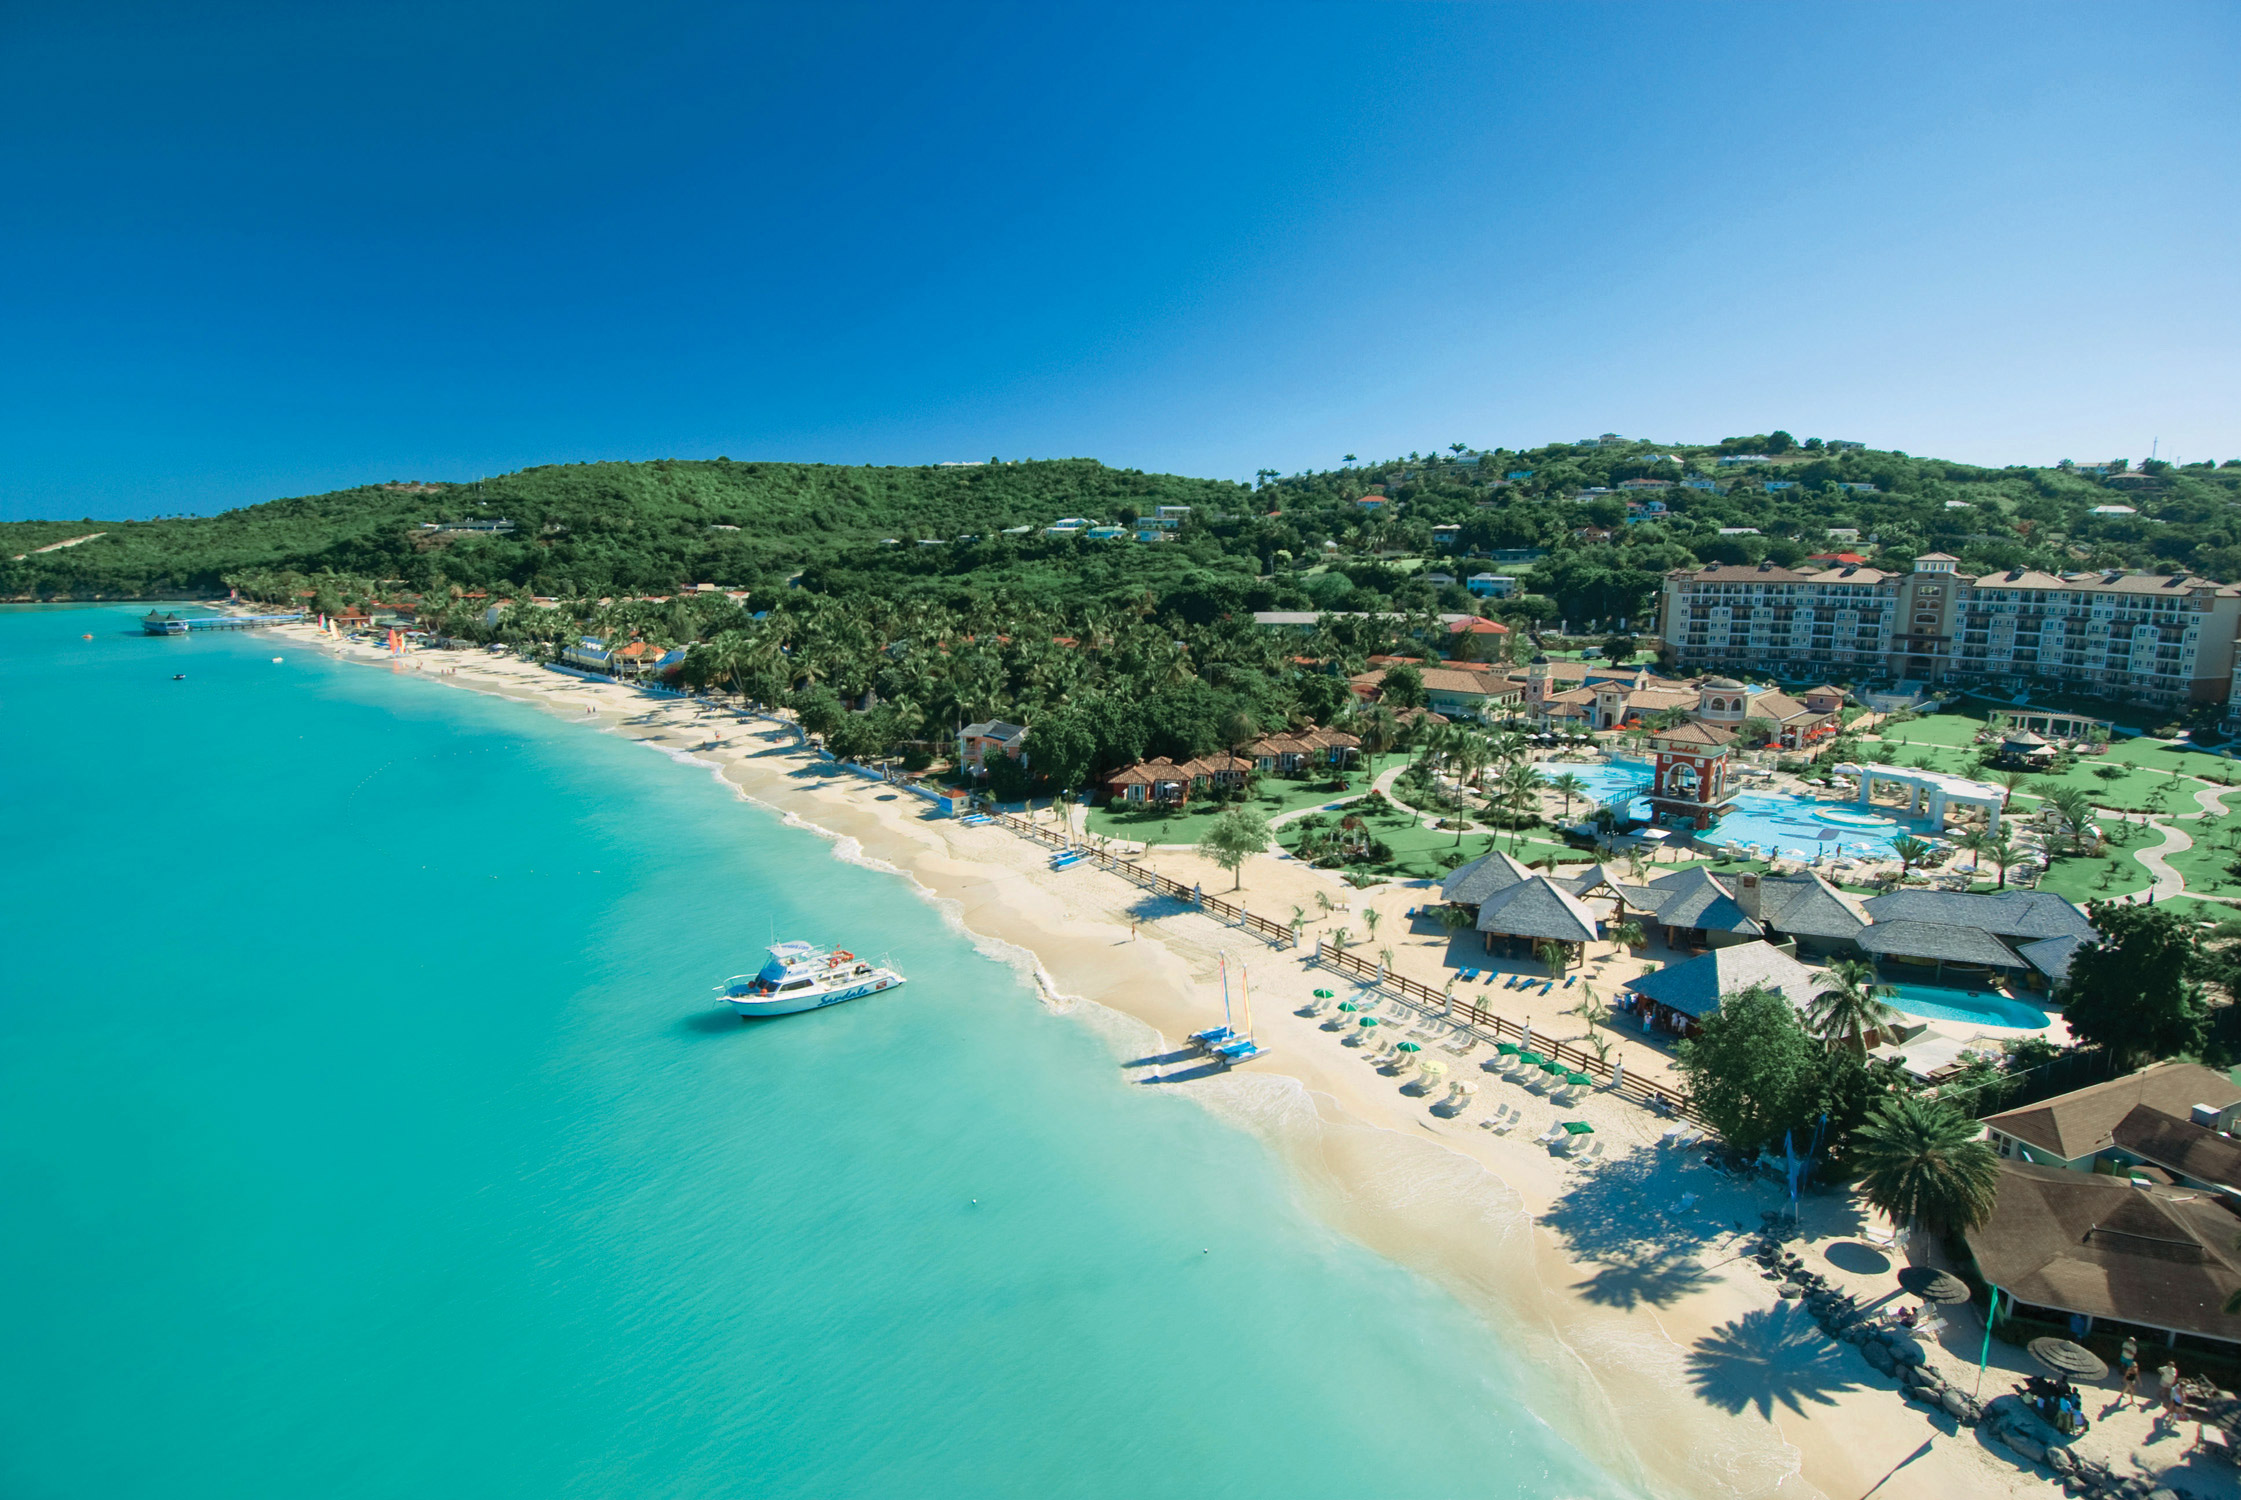 Sandals Grande Antigua Resort & Spa